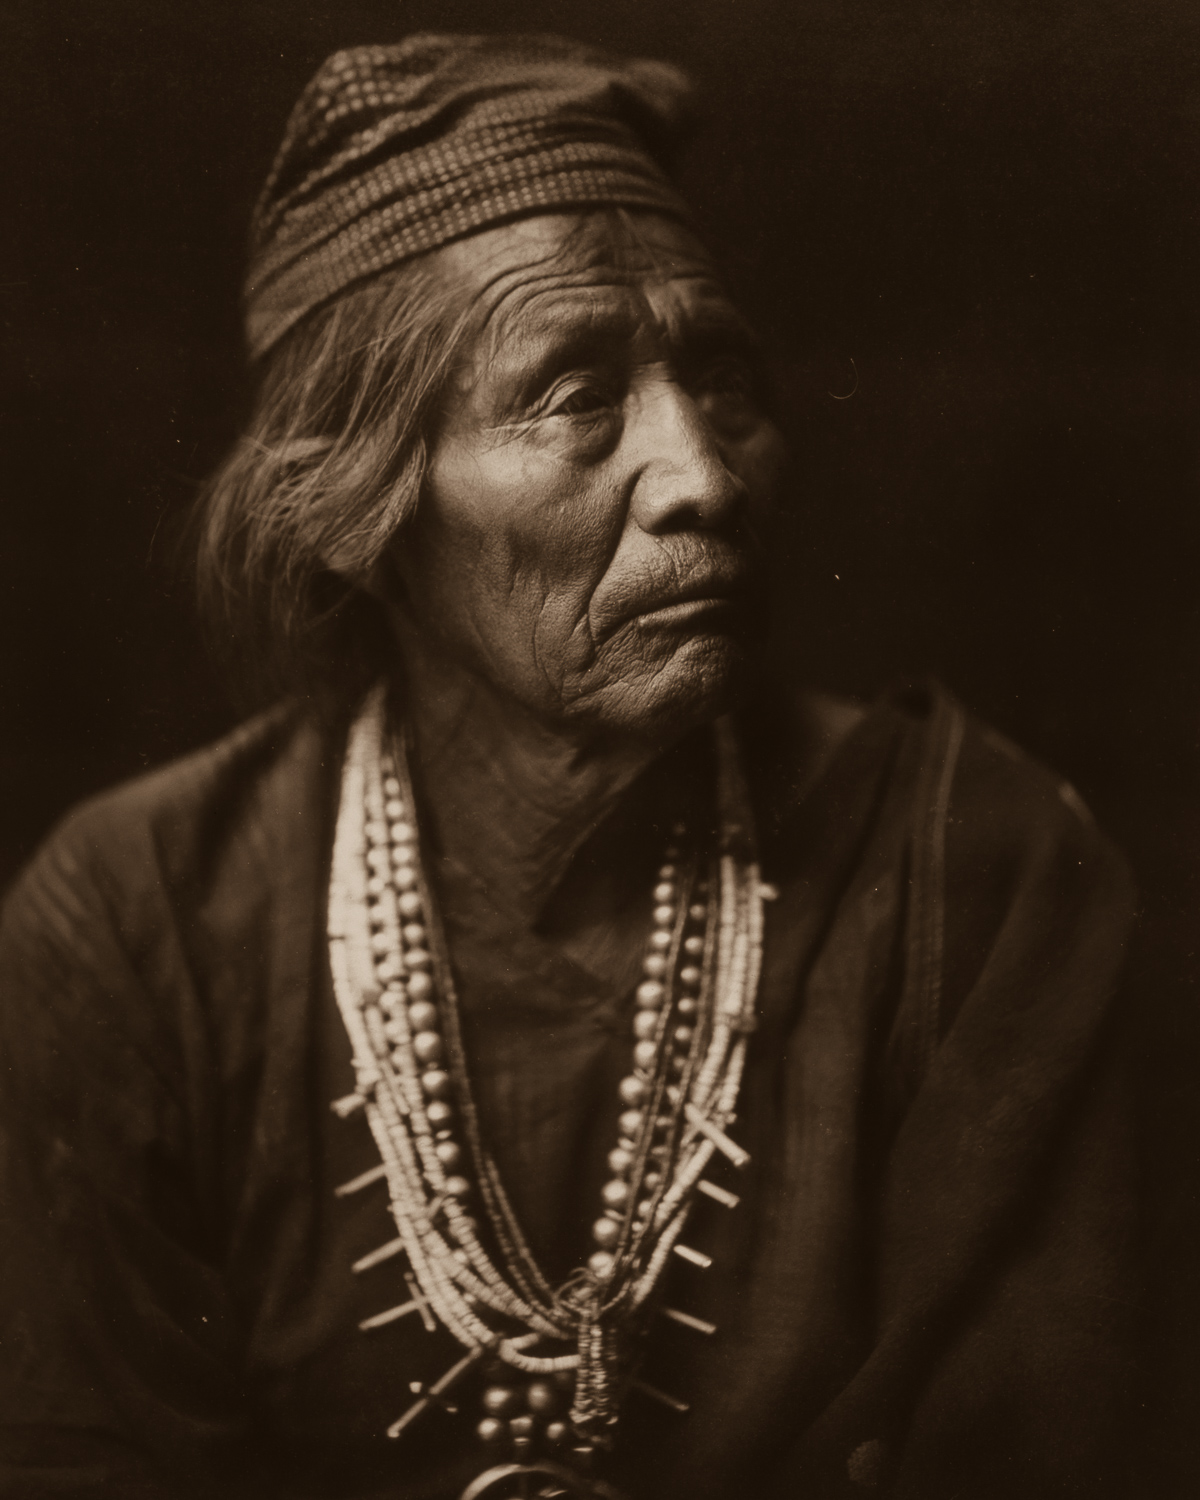 An expansive photo record of Native American life in the early 1900s